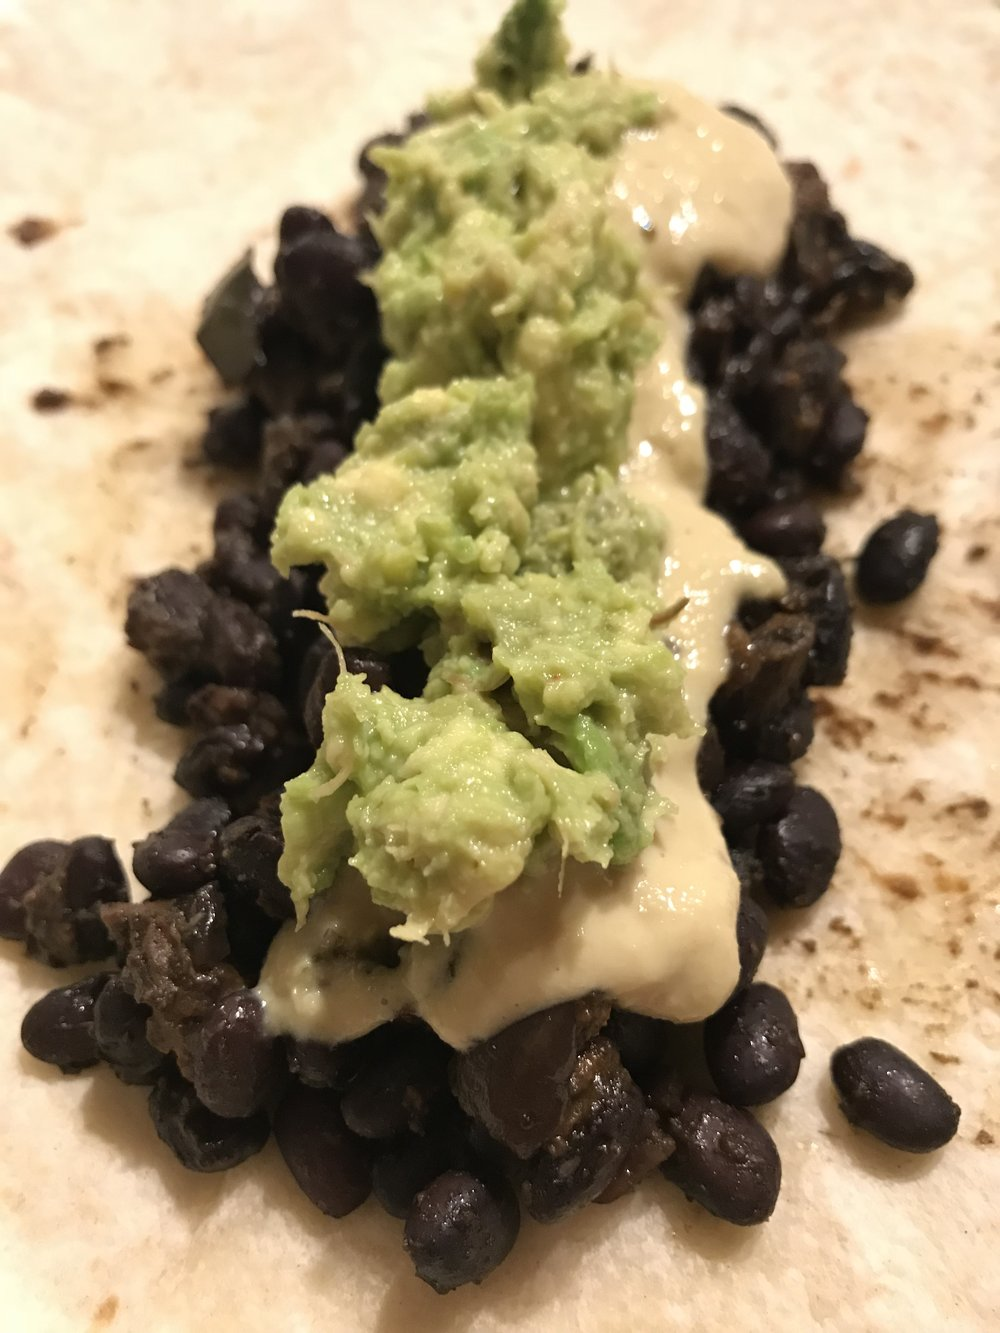 Black bean burrito - clean and healthy.